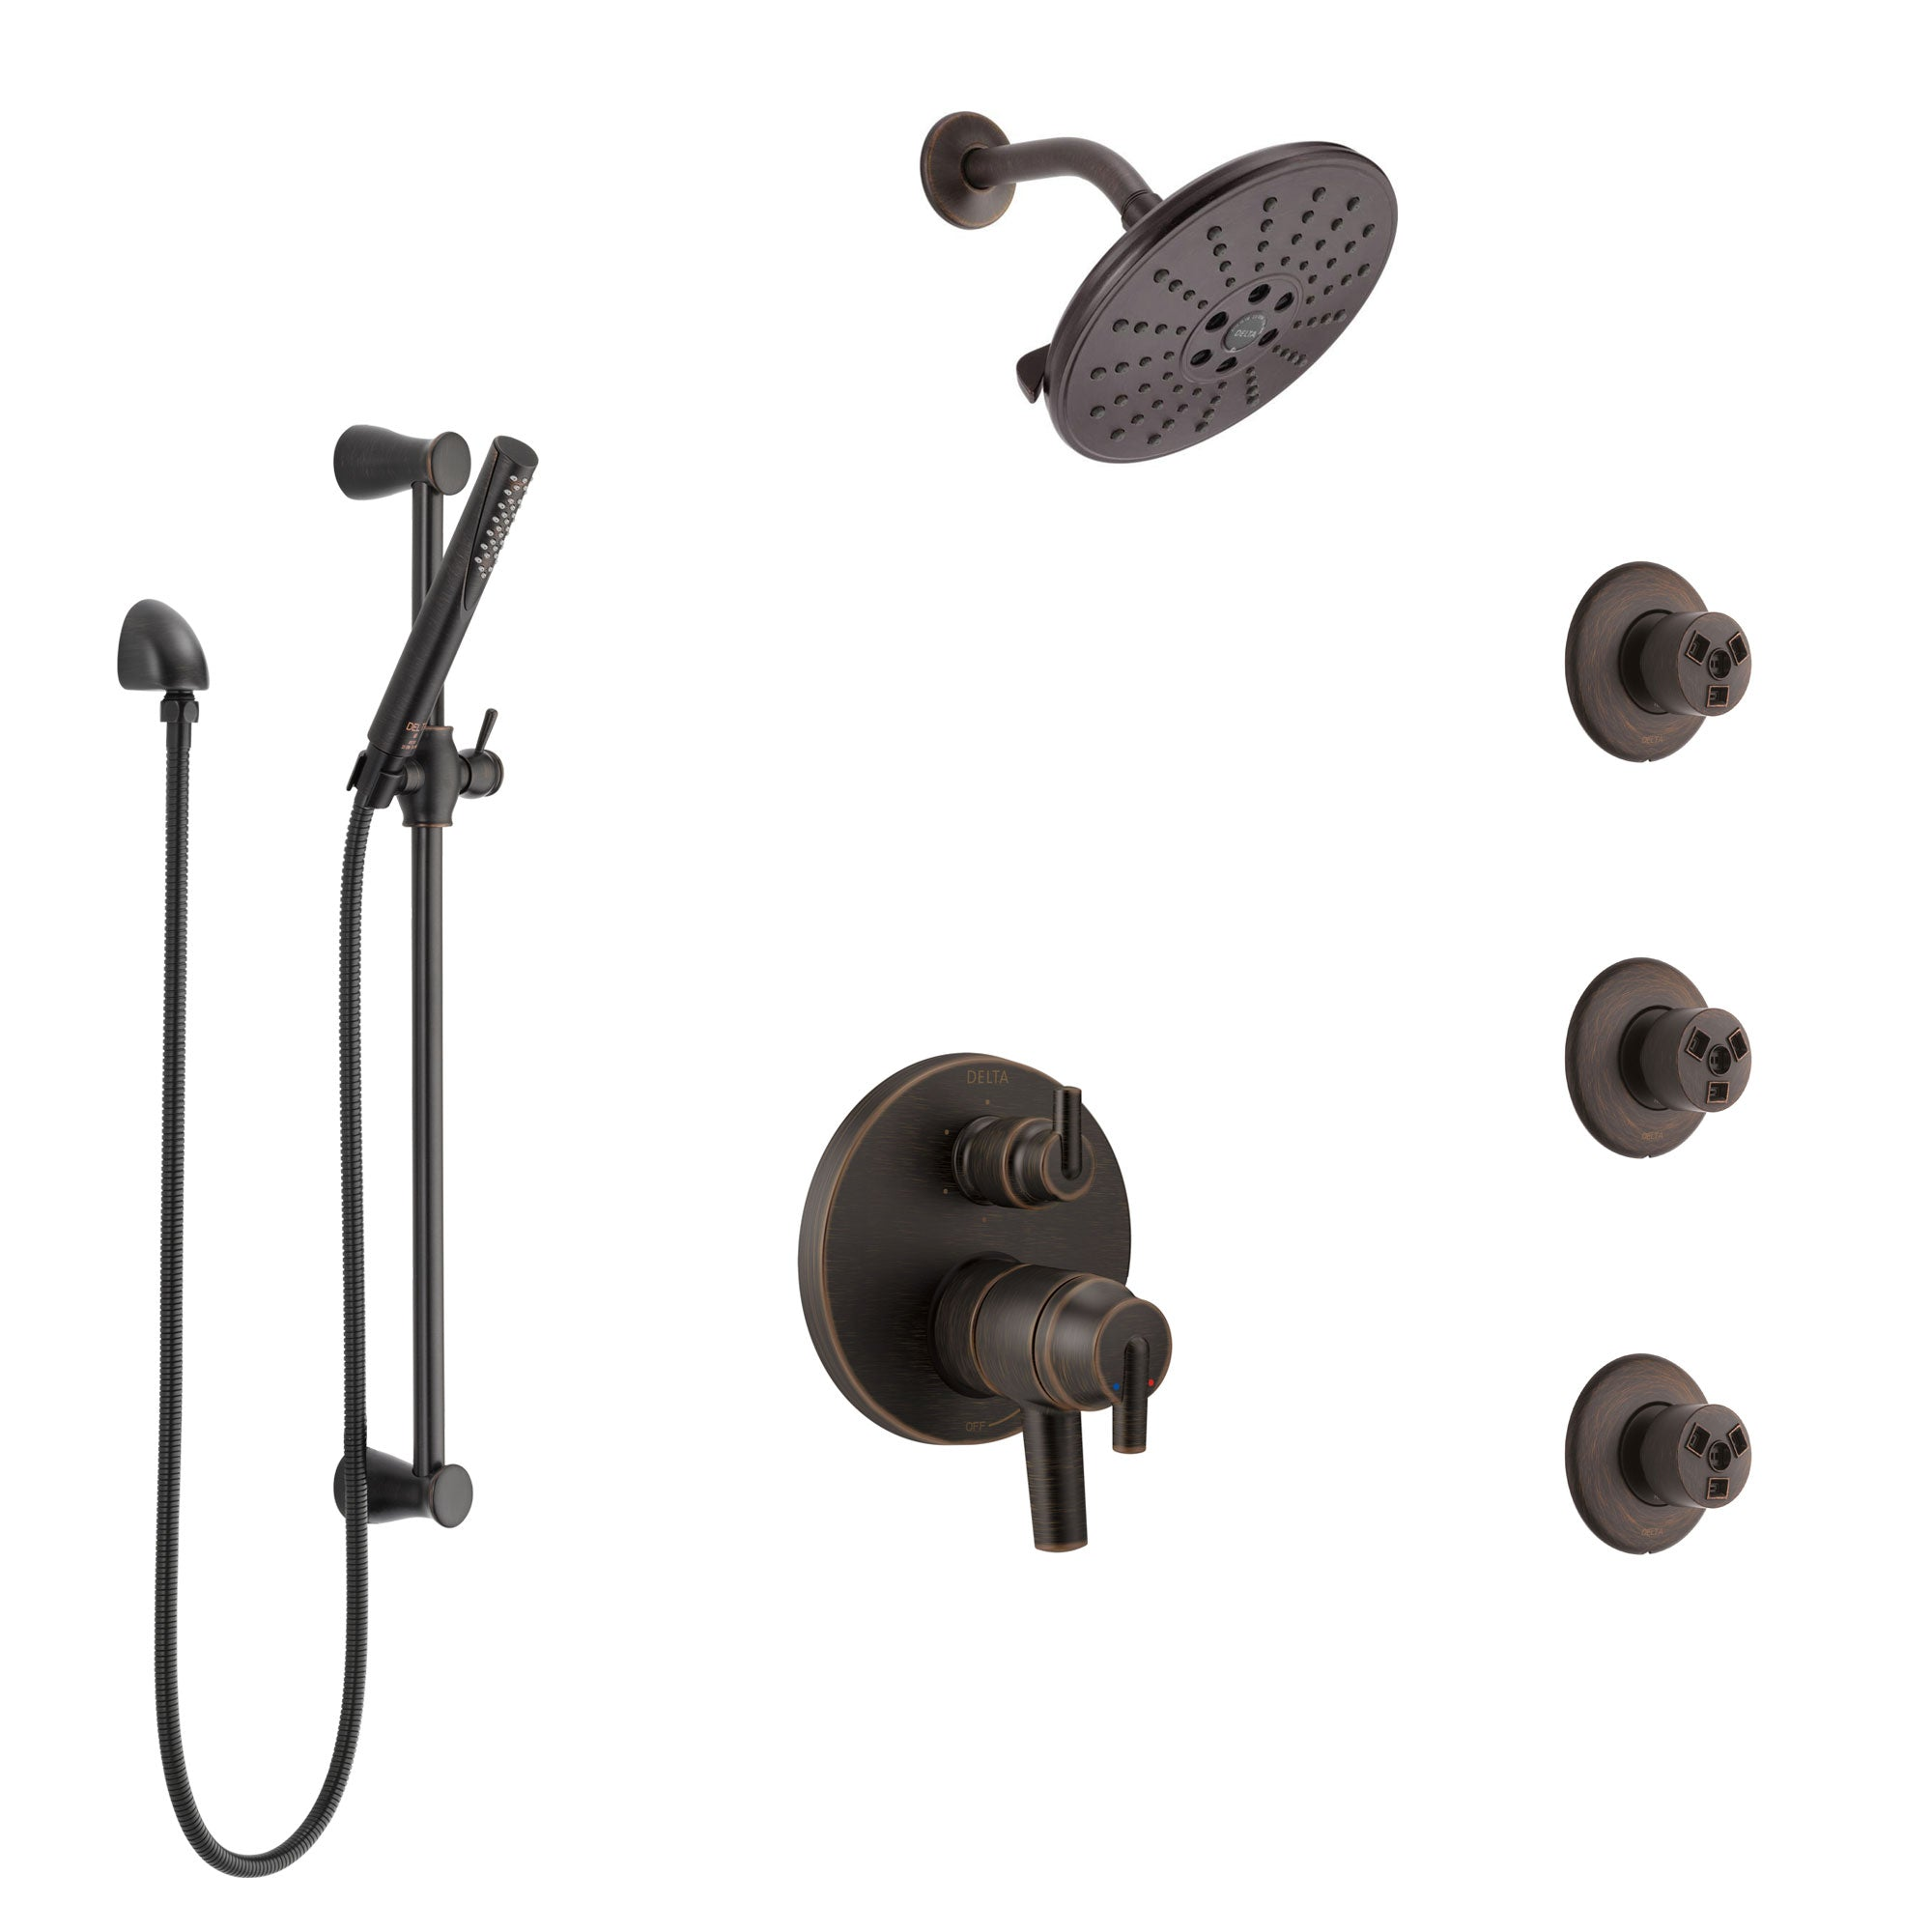 Delta Trinsic Venetian Bronze Shower System with Dual Control Handle, Integrated Diverter, Showerhead, 3 Body Sprays, and Hand Shower SS27959RB1